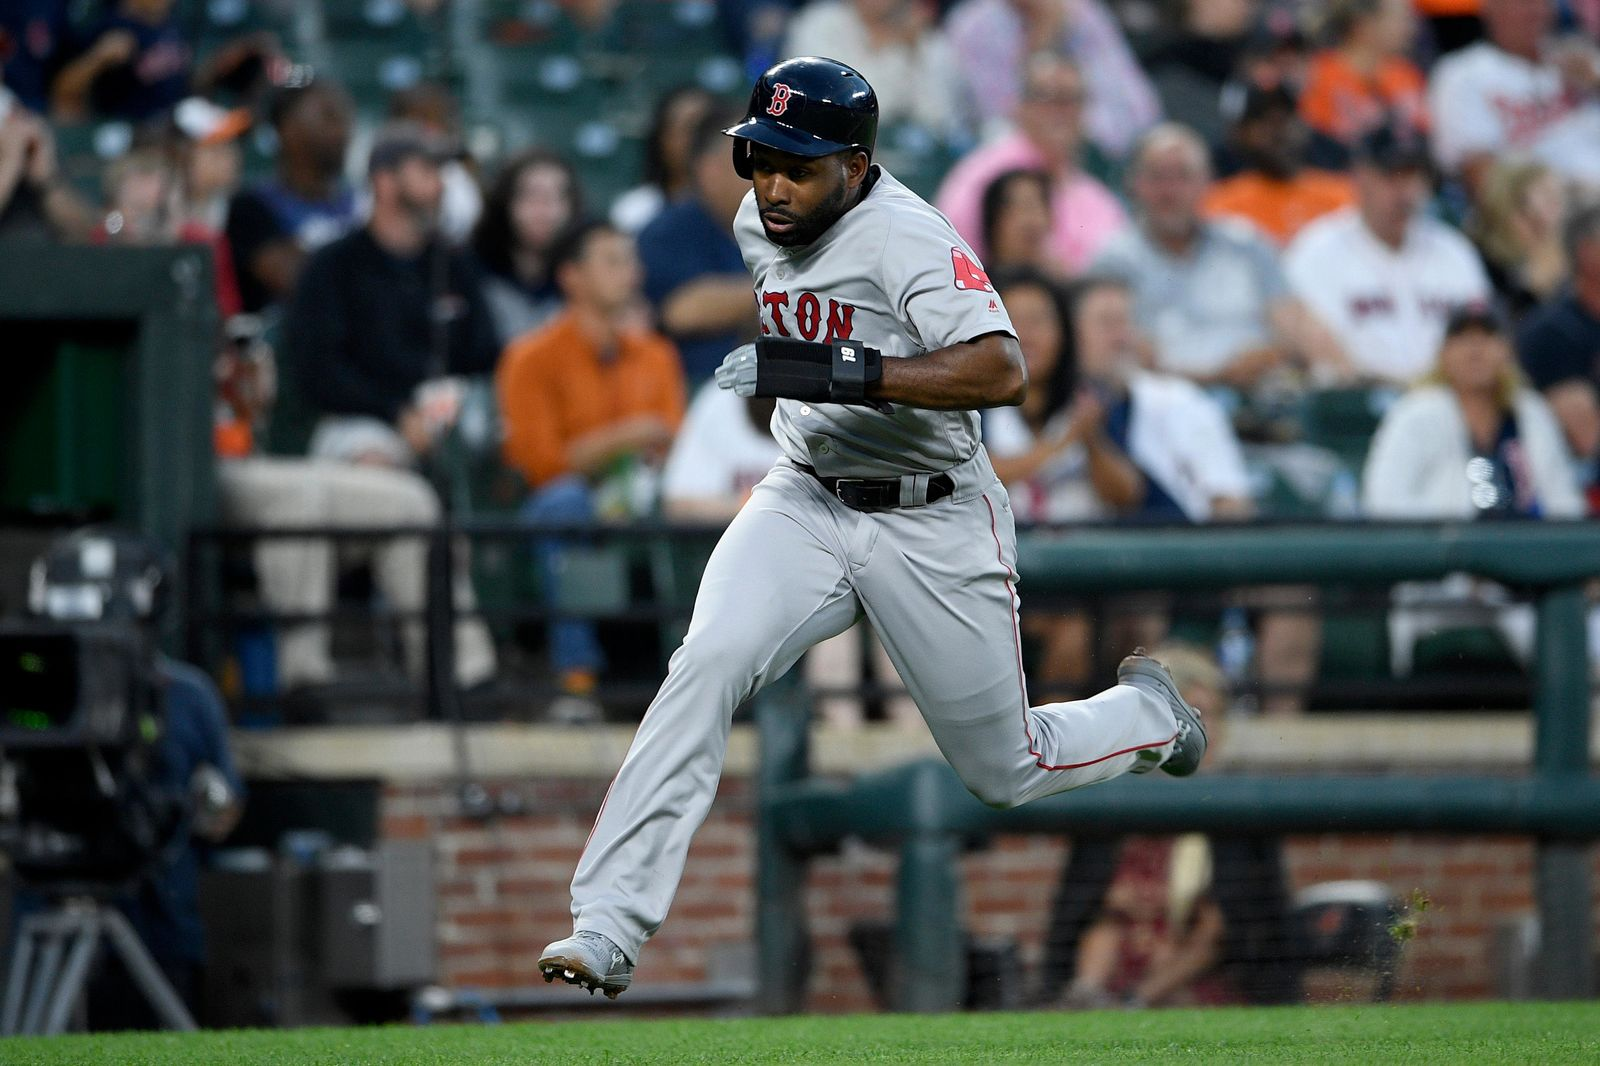 Boston Red Sox's Jackie Bradley Jr. runs toward home to score during the fourth inning of a baseball game against the Baltimore Orioles, Friday, June 14, 2019, in Baltimore. (AP Photo/Nick Wass)